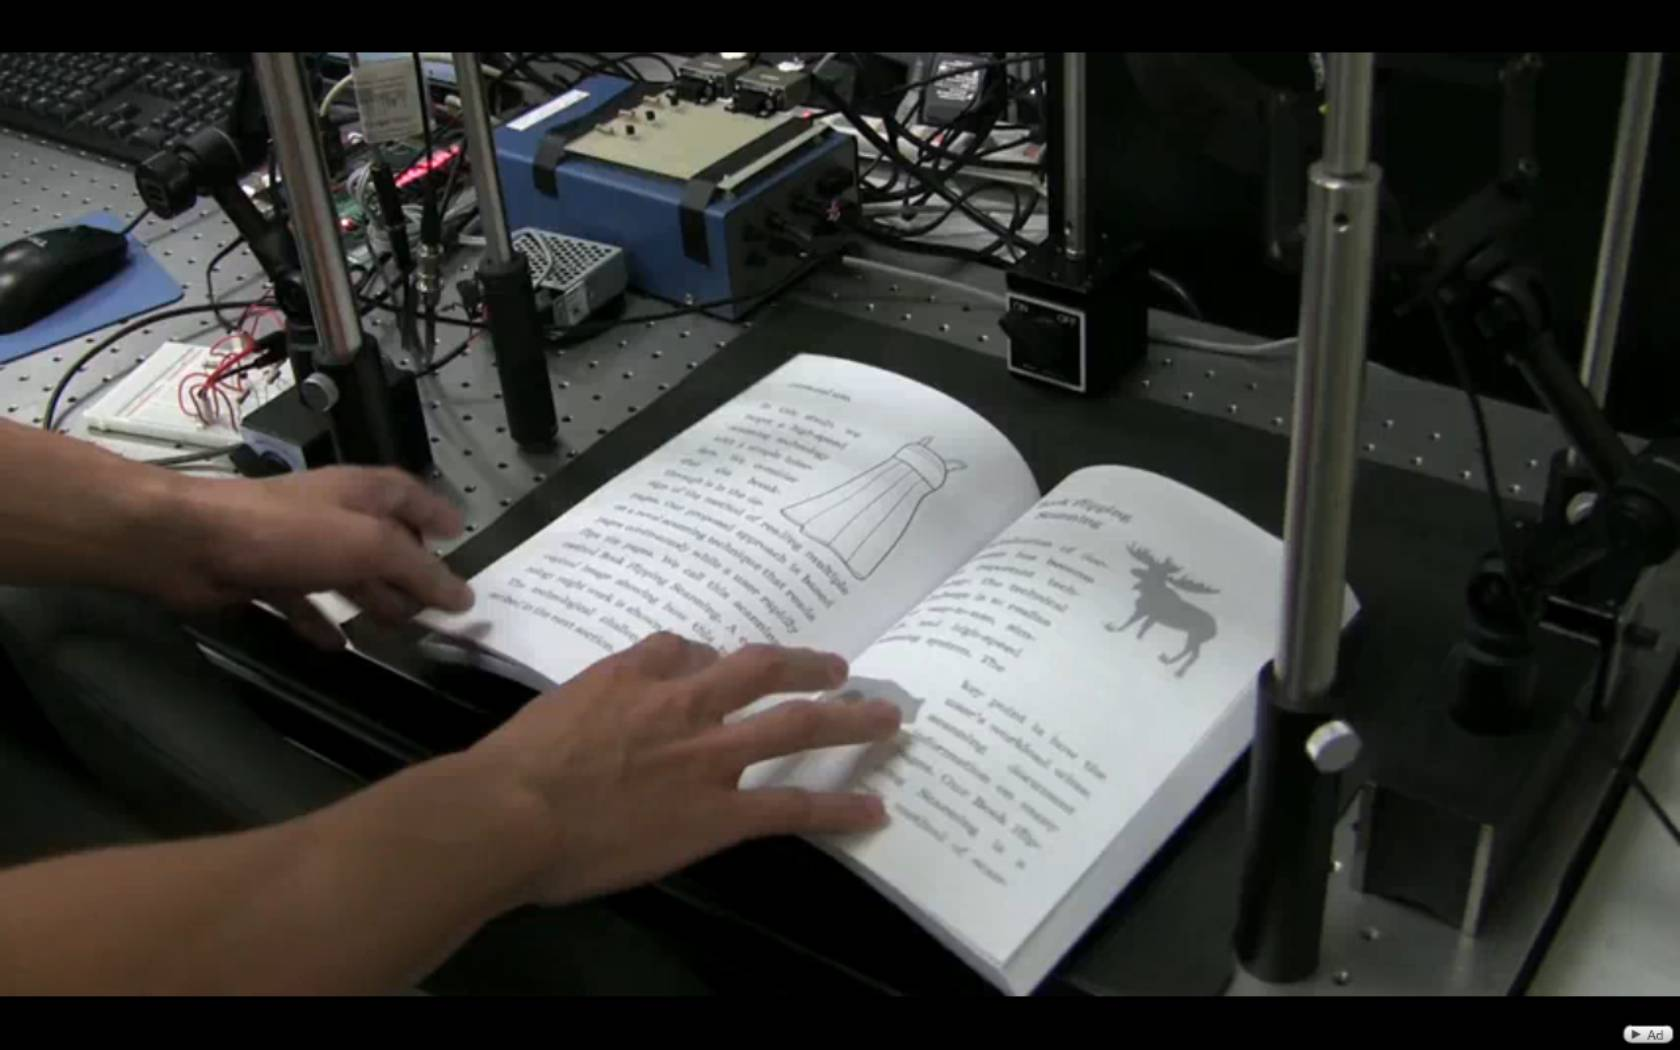 Video: Fastest Book Scanner Ever Captures Flipping Pages with High-Speed Camera